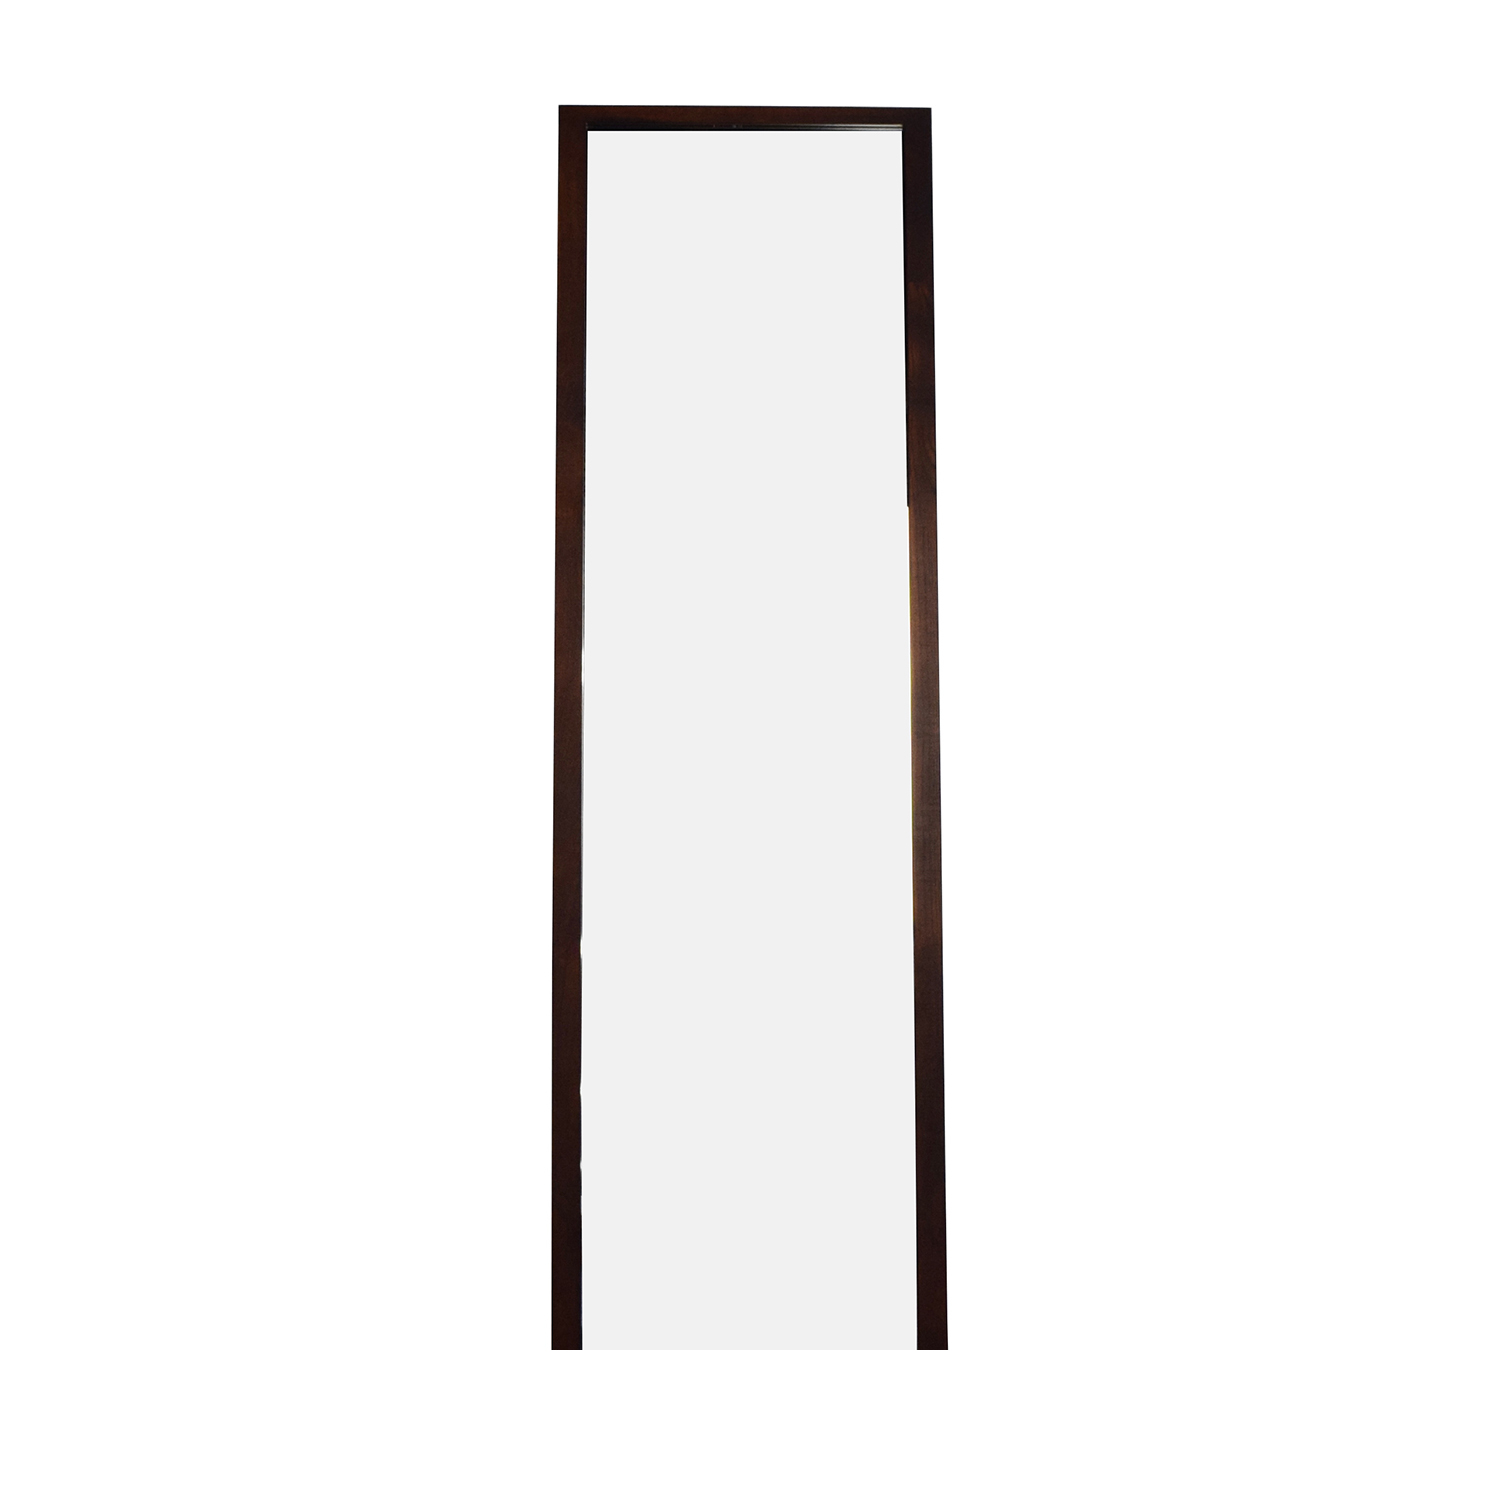 Crate and Barrel Crate & Barrel Loop Floor Mirror price